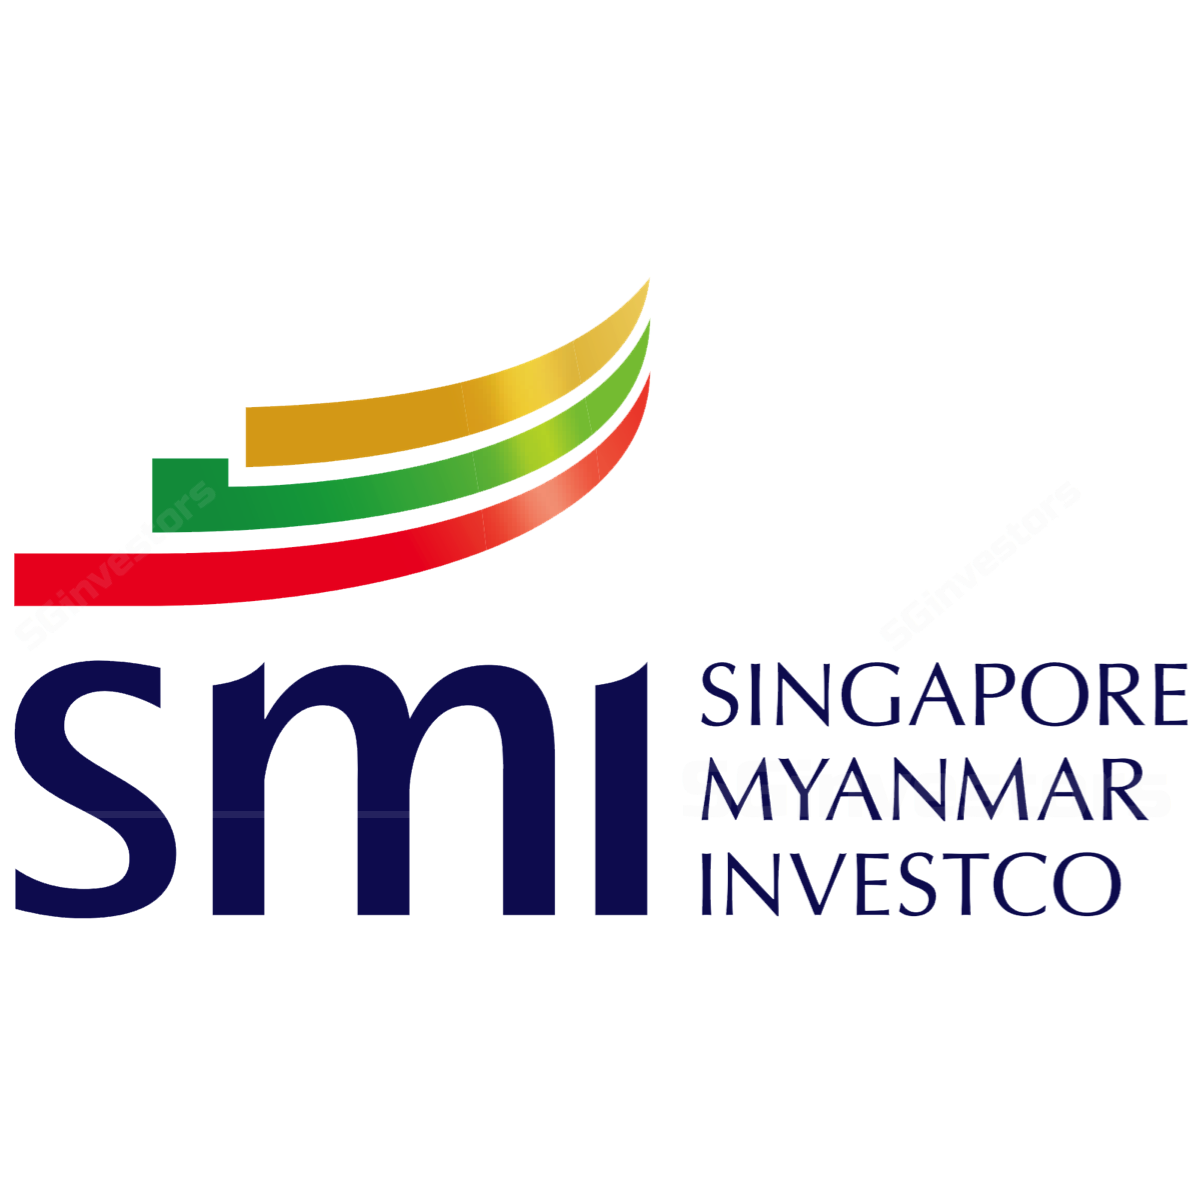 Singapore Myanmar Investco - OCBC Investment 2017-05-31: Growth In Progress